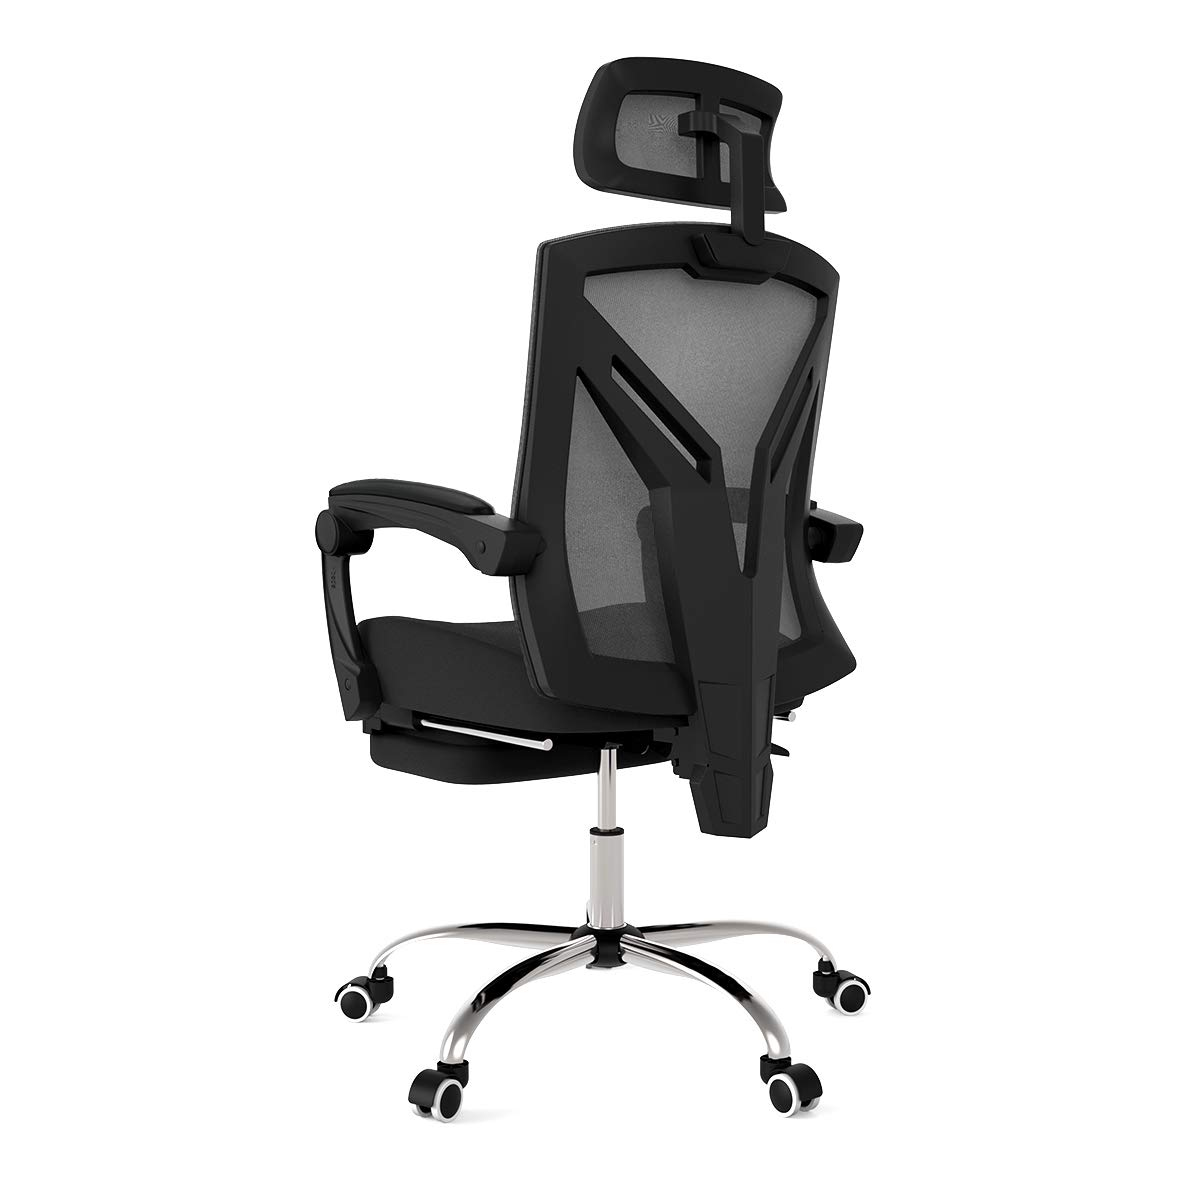 Hbada Ergonomic Office Recliner Chair - High-Back Desk Chair Racing Style with Lumbar Support - Height Adjustable Seat, Headrest- Breathable Mesh Back - Soft Foam Seat Cushion with Footrest, Black by Hbada (Image #3)